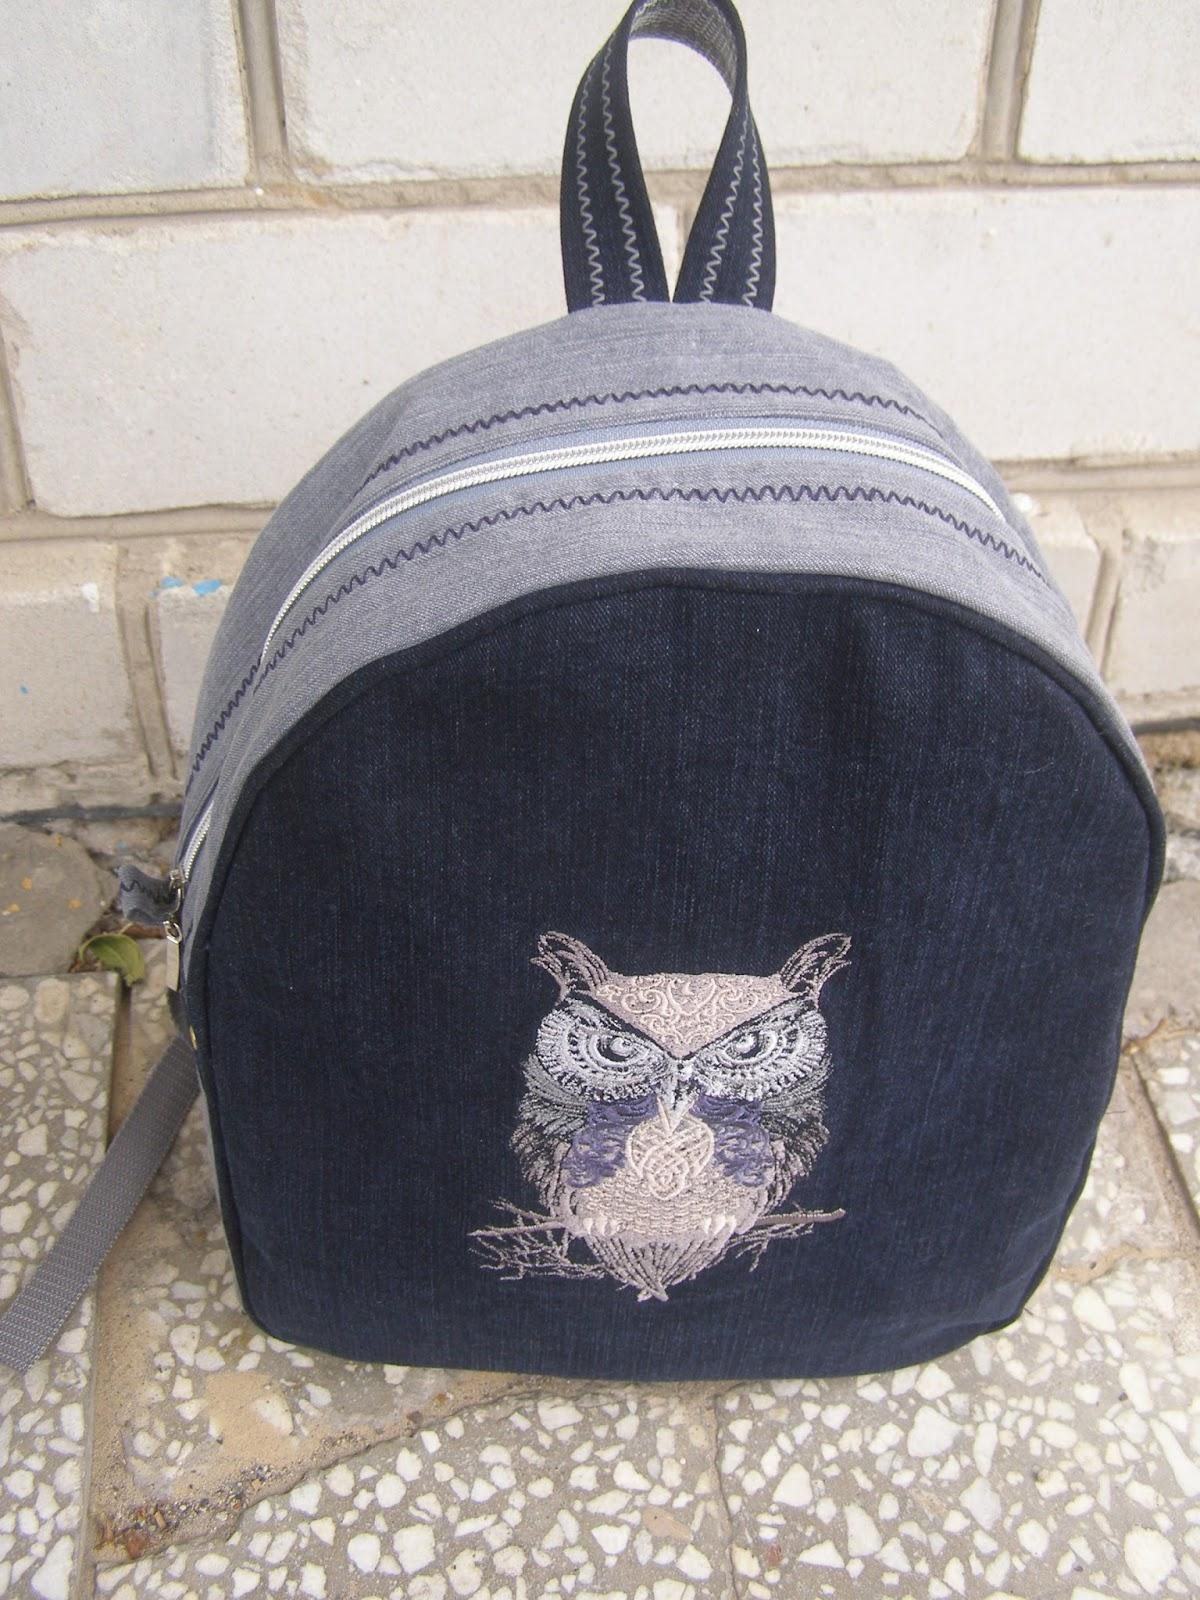 School backpack with Tribal owl design